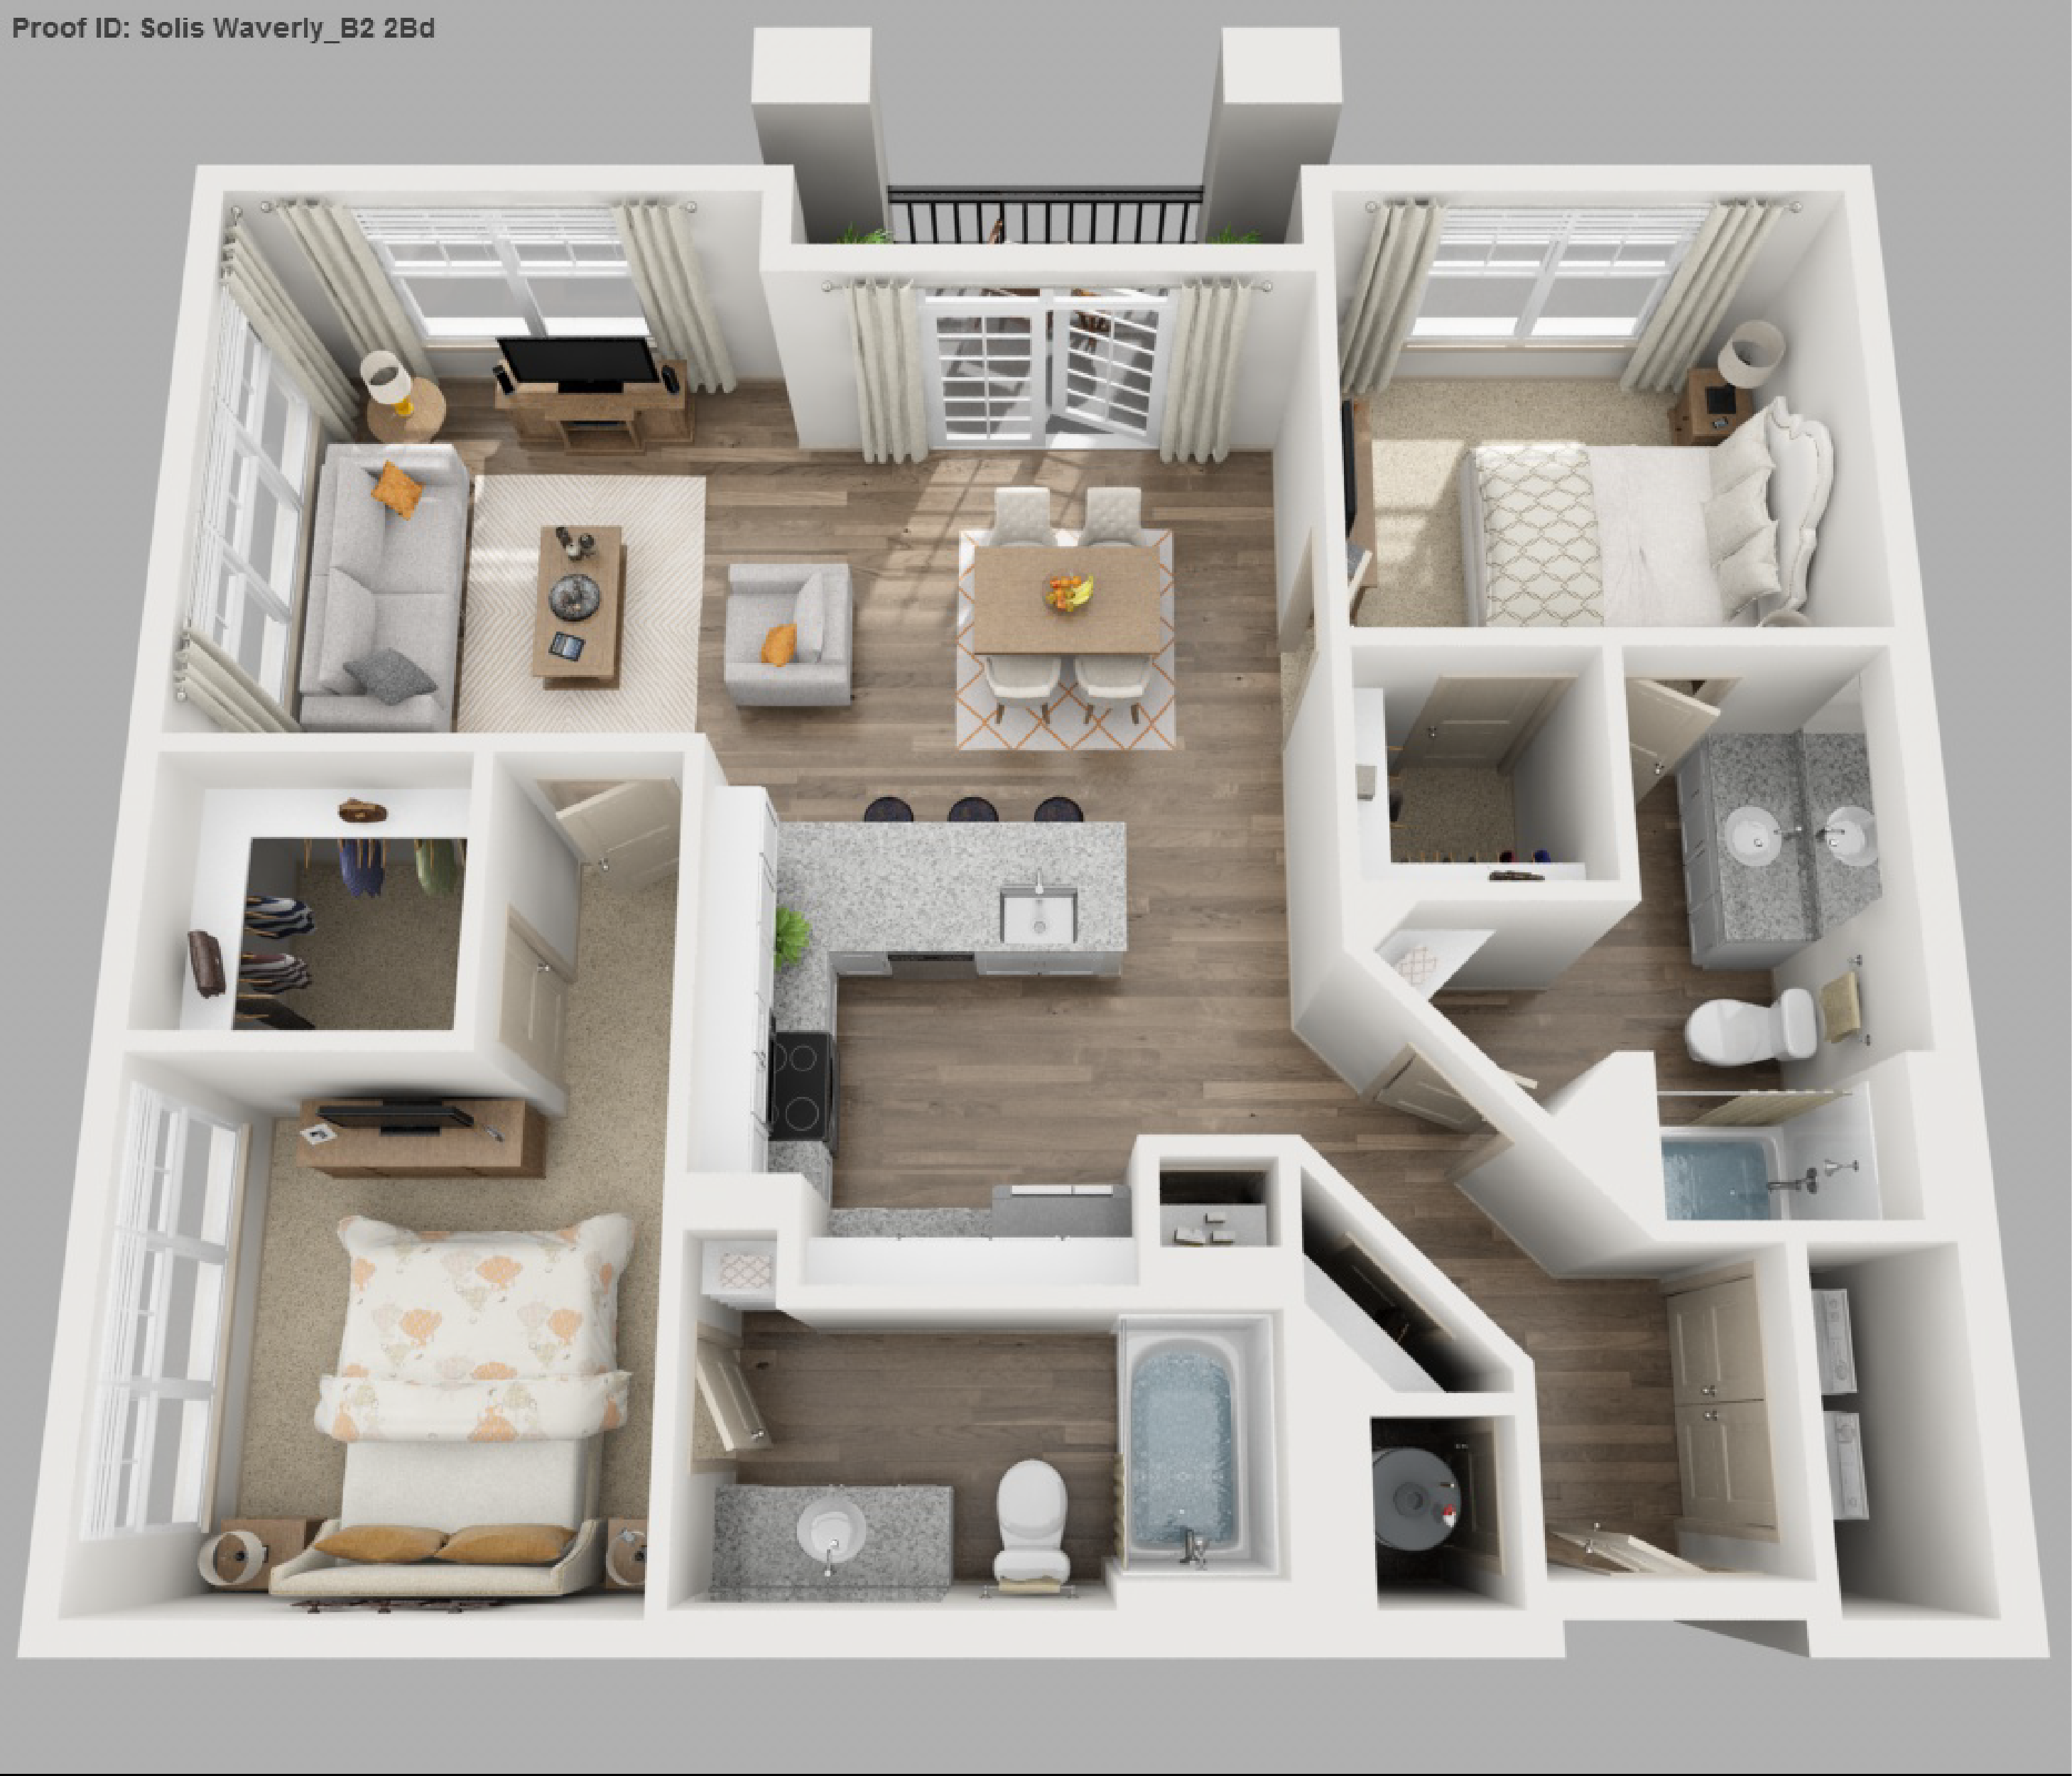 Solis apartments floorplans waverly for 2 bedroom apartments plans